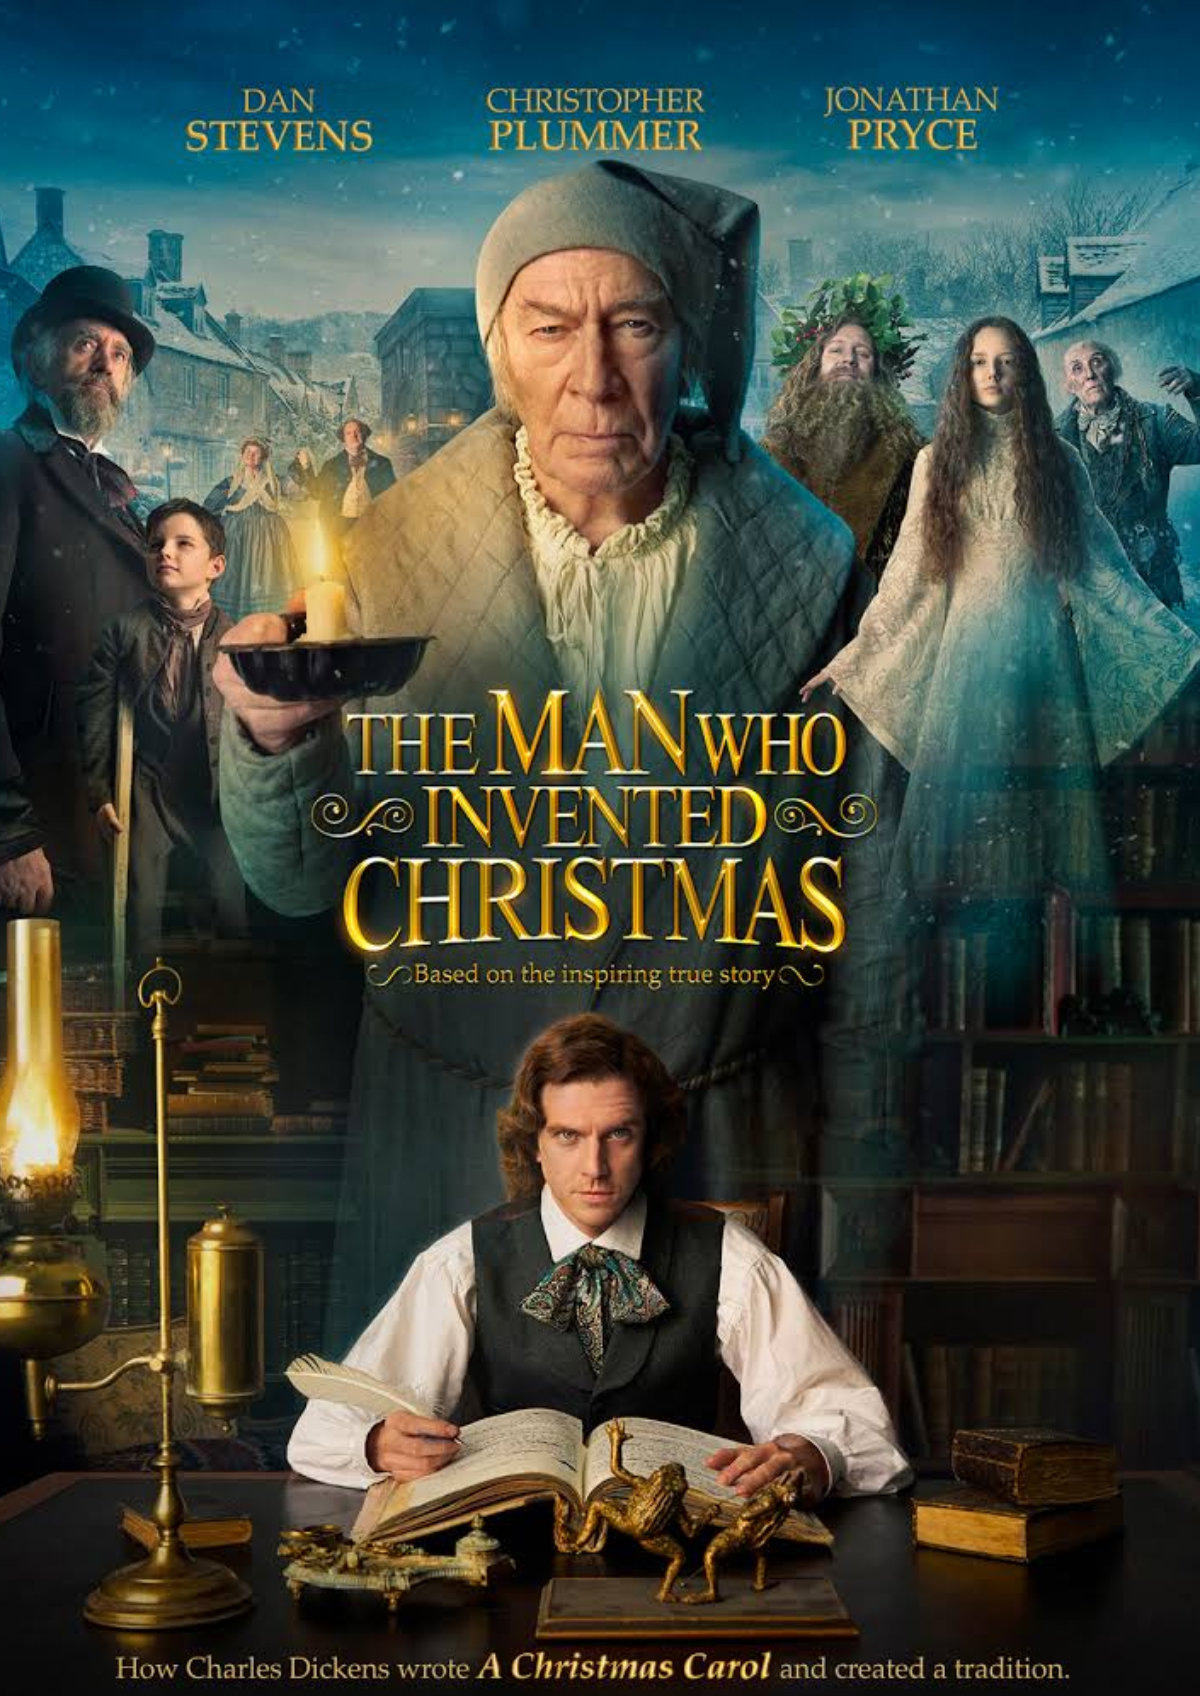 'The Man Who Invented Christmas' movie poster